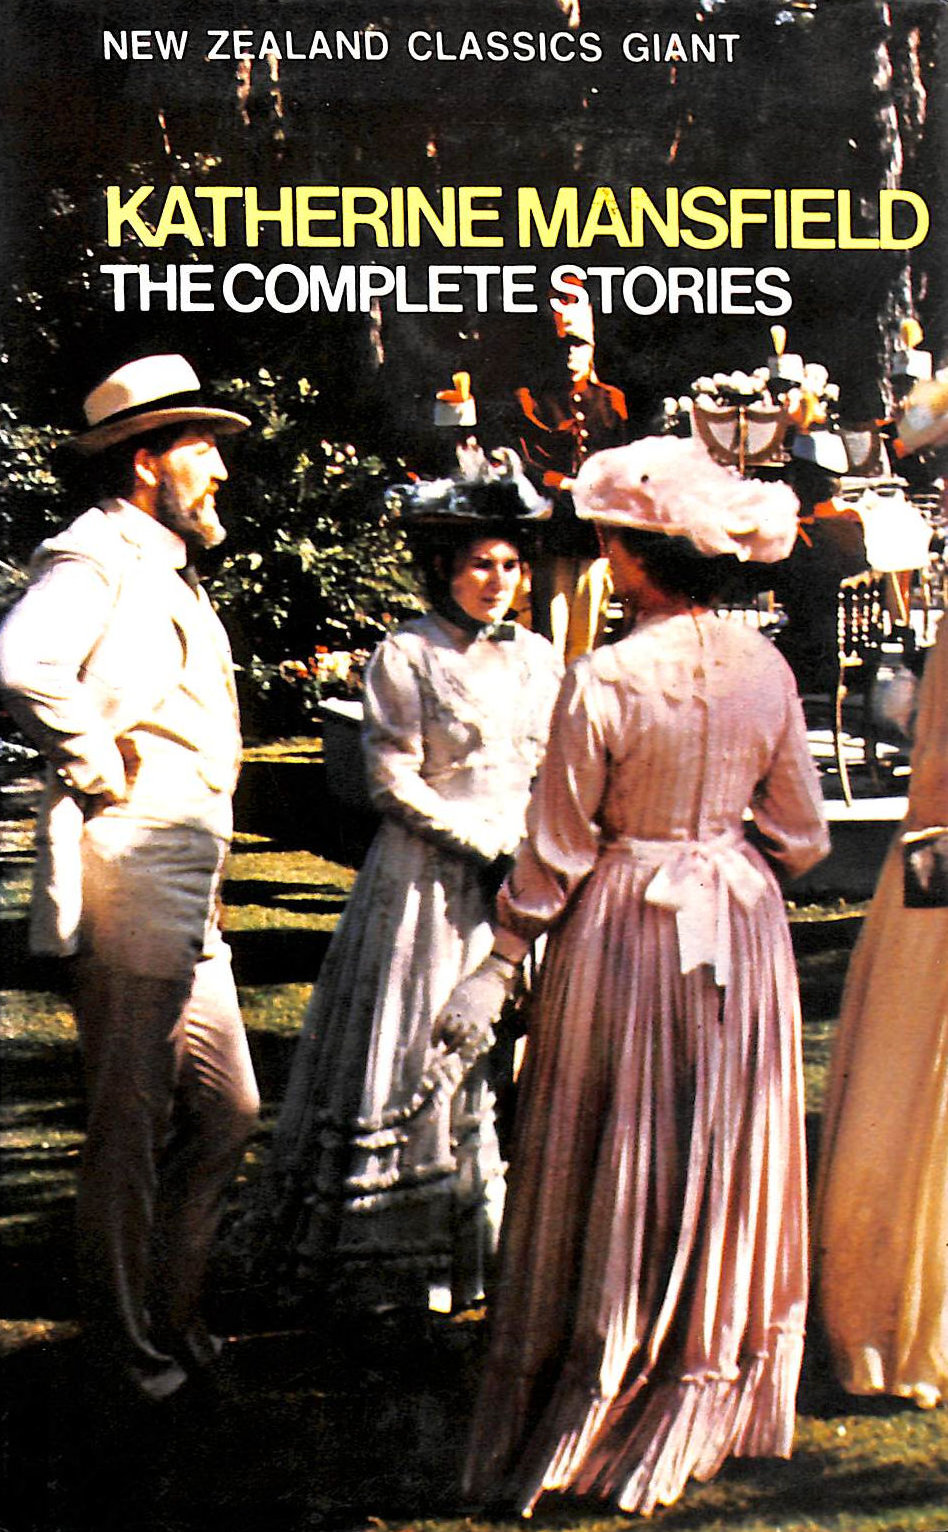 Image for The complete stories of Katherine Mansfield (New Zealand classics giant)